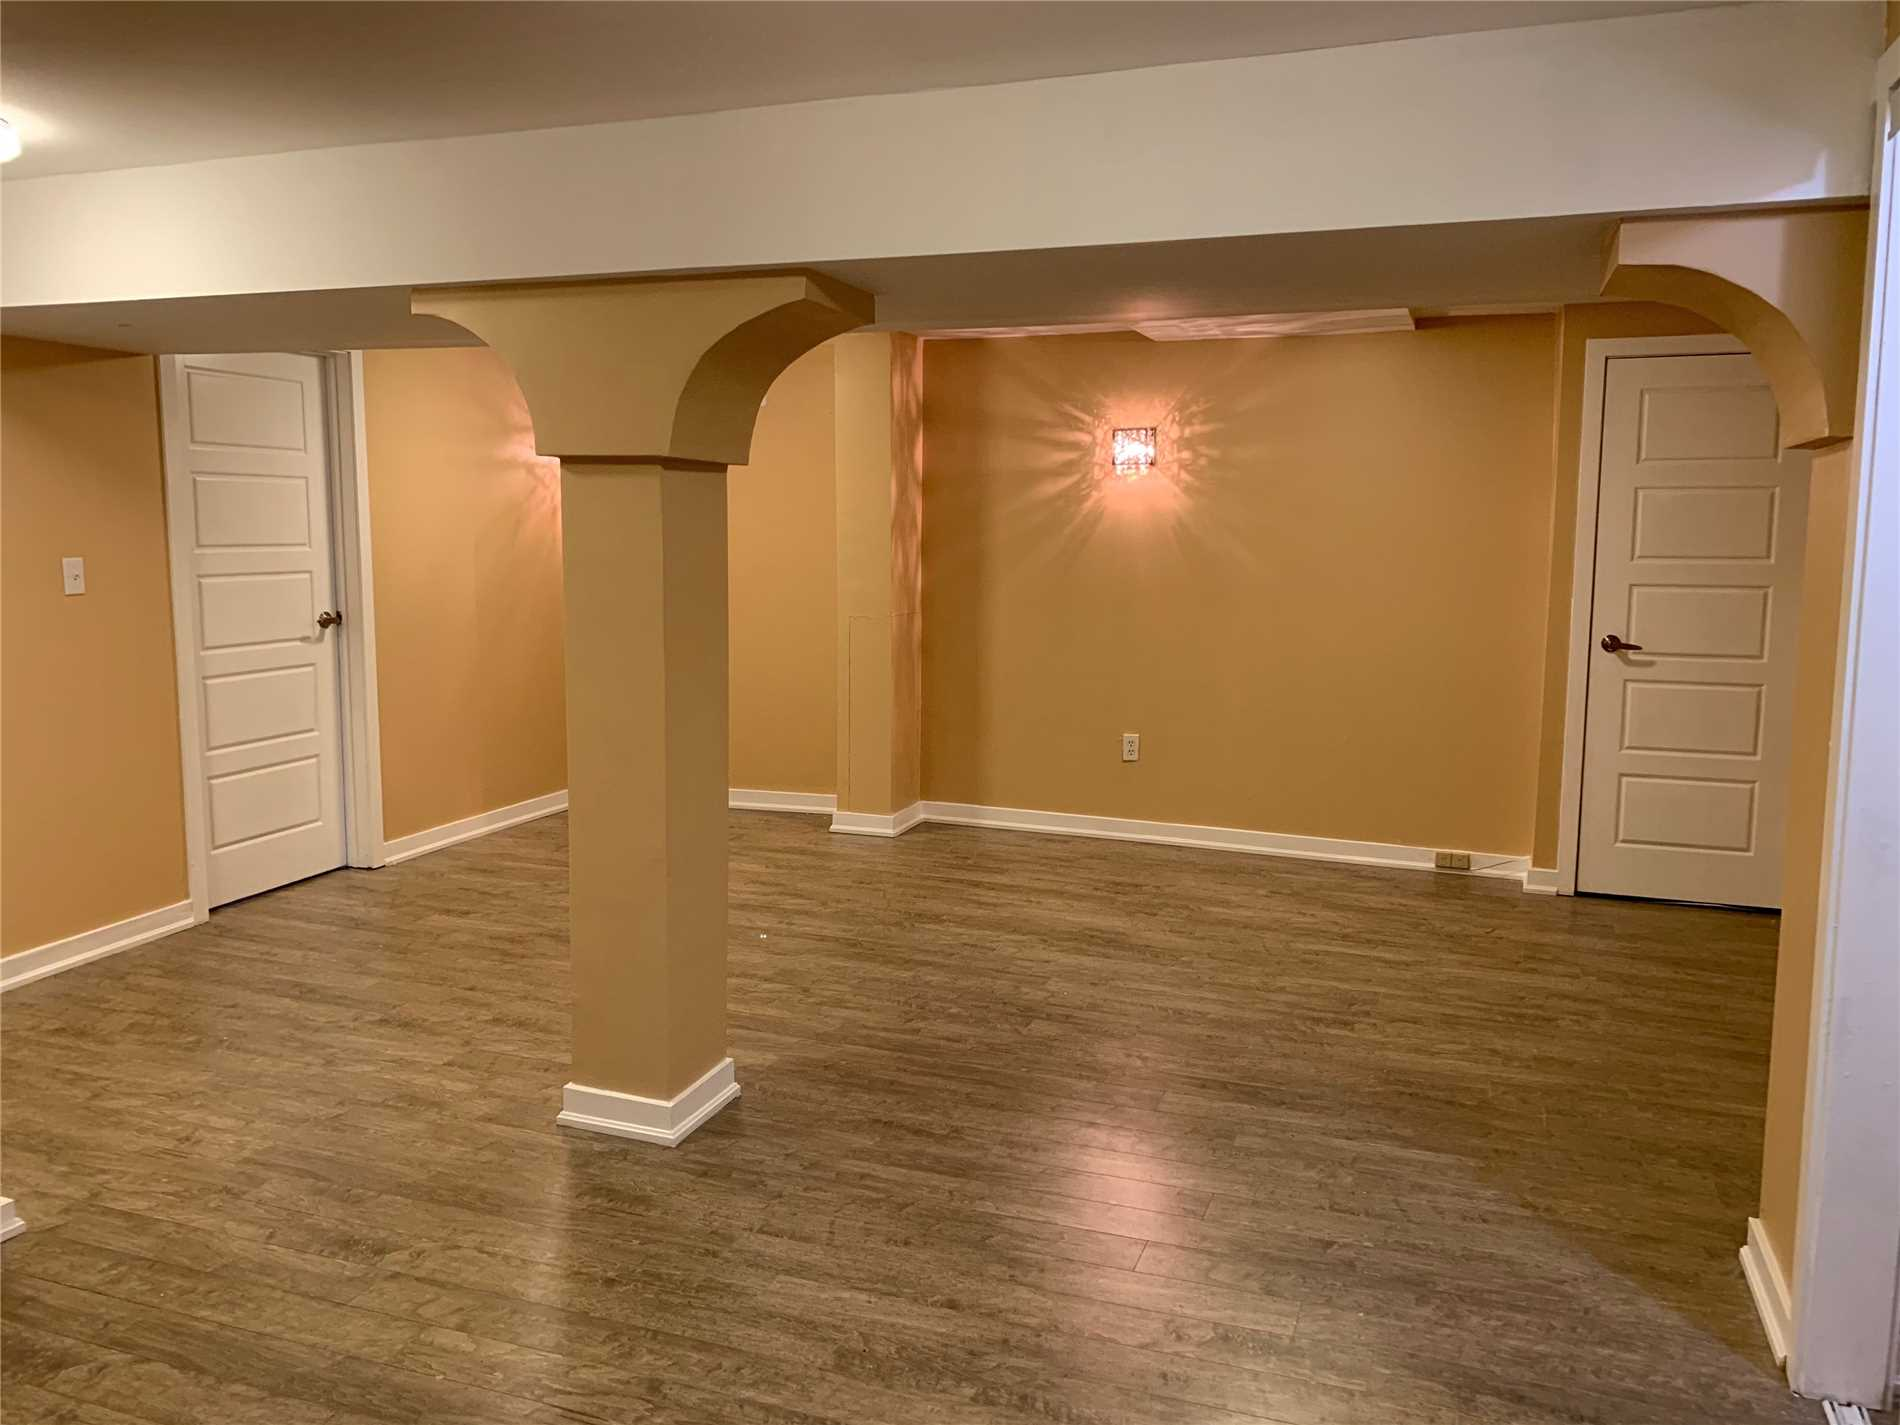 Beautiful Modern Two Bedroom Basement Apartment. Family Room, Dining Area, All New Appliances, Separate Entrance, Separate Laundry With Hardwood Flooring Throughout. Ideal For A Small Family. No Pets, No Smoking .